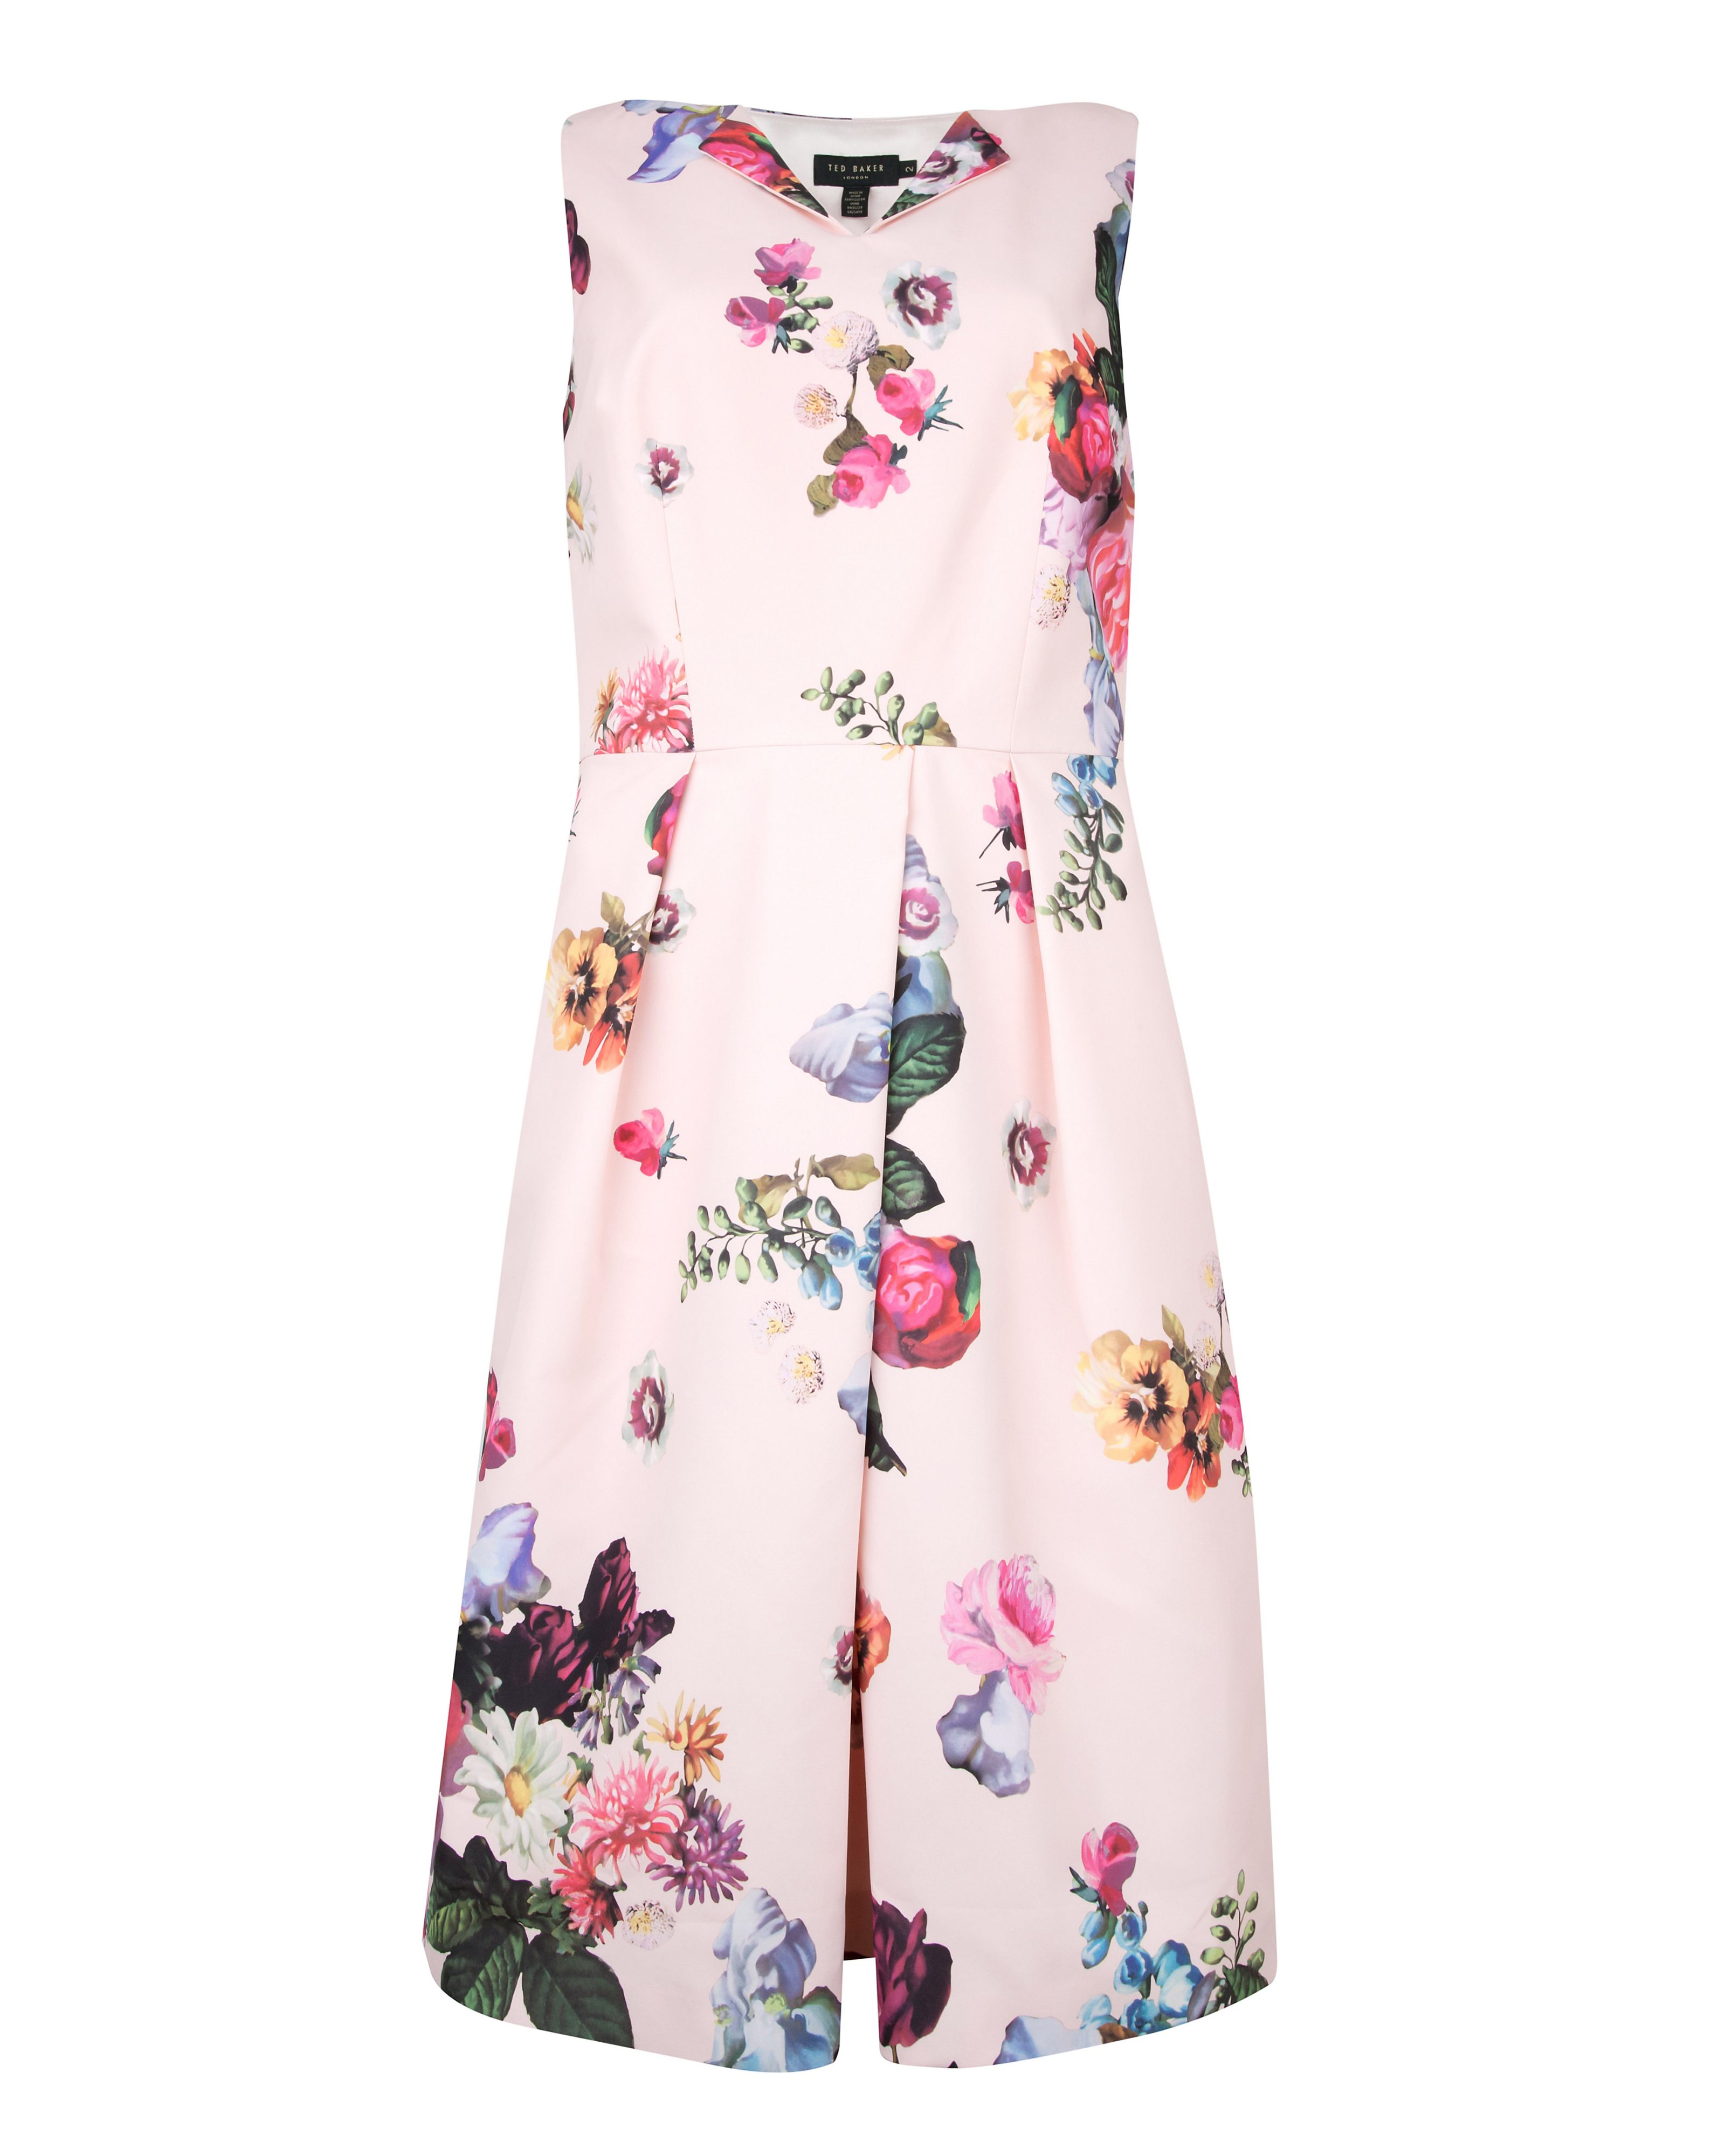 Deavon floral printed dress